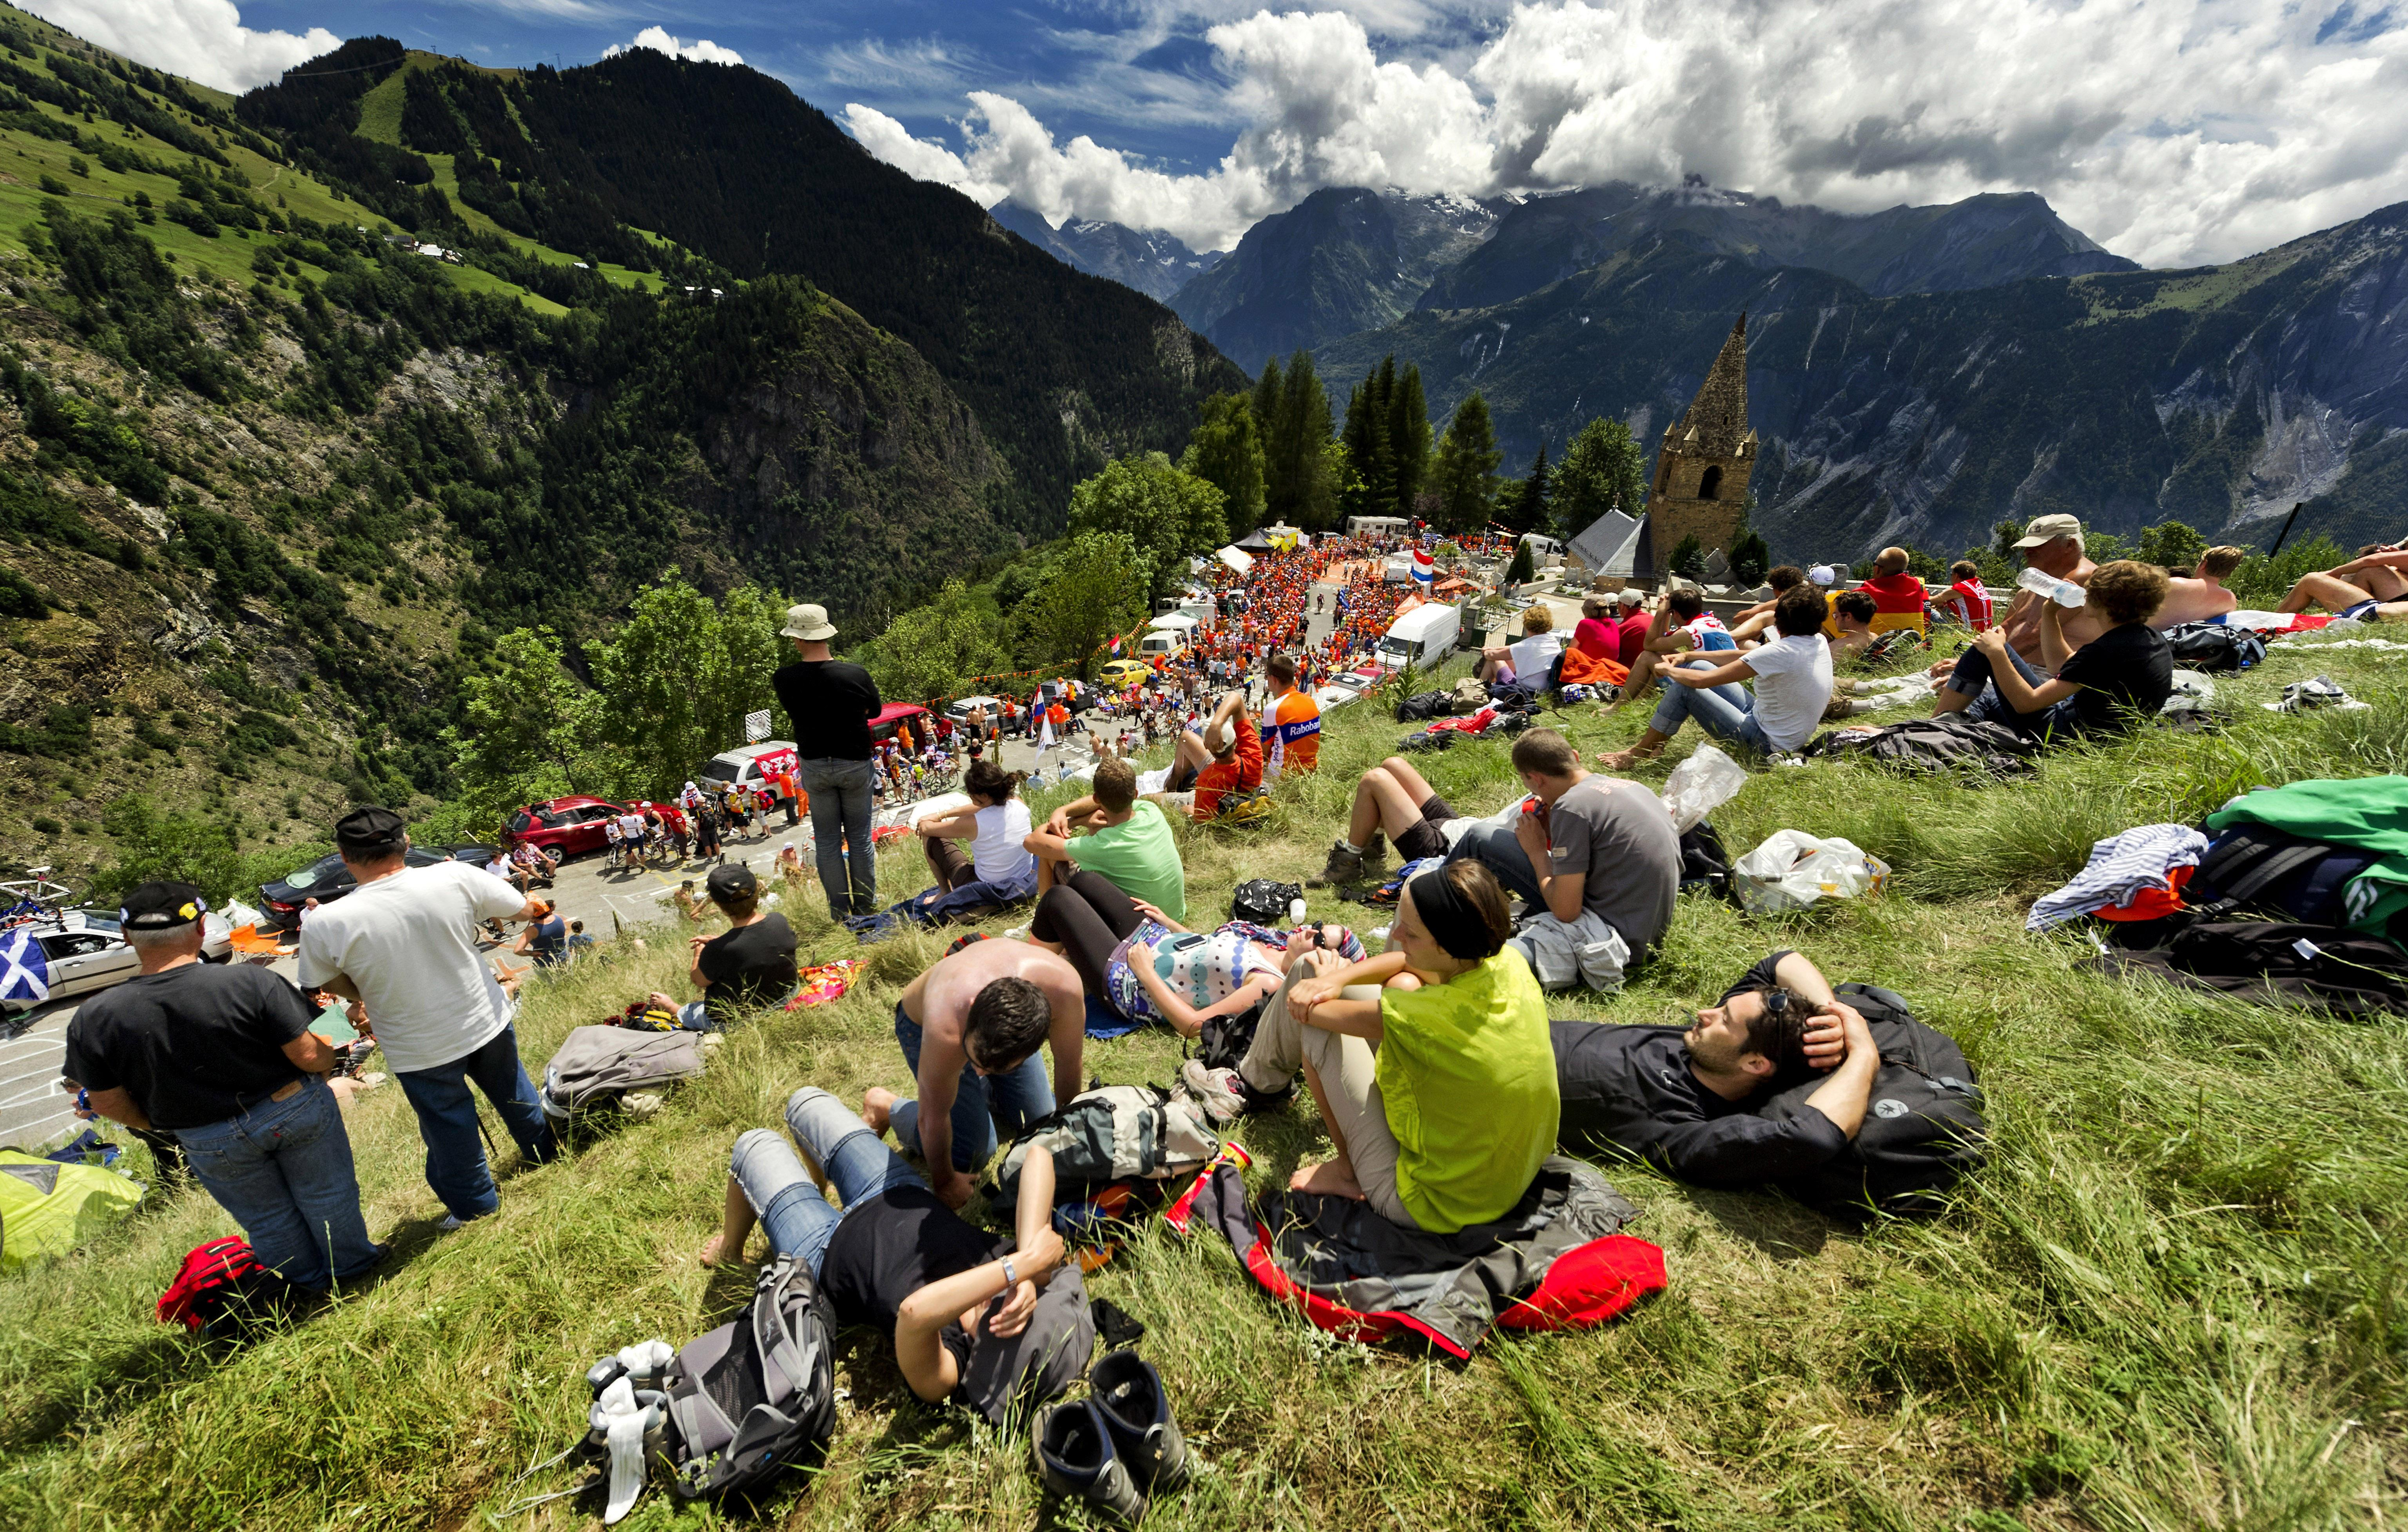 Fans overlooking Dutch corner – riders from the Netherlands have enjoyed huge success at Alpe d'Huez